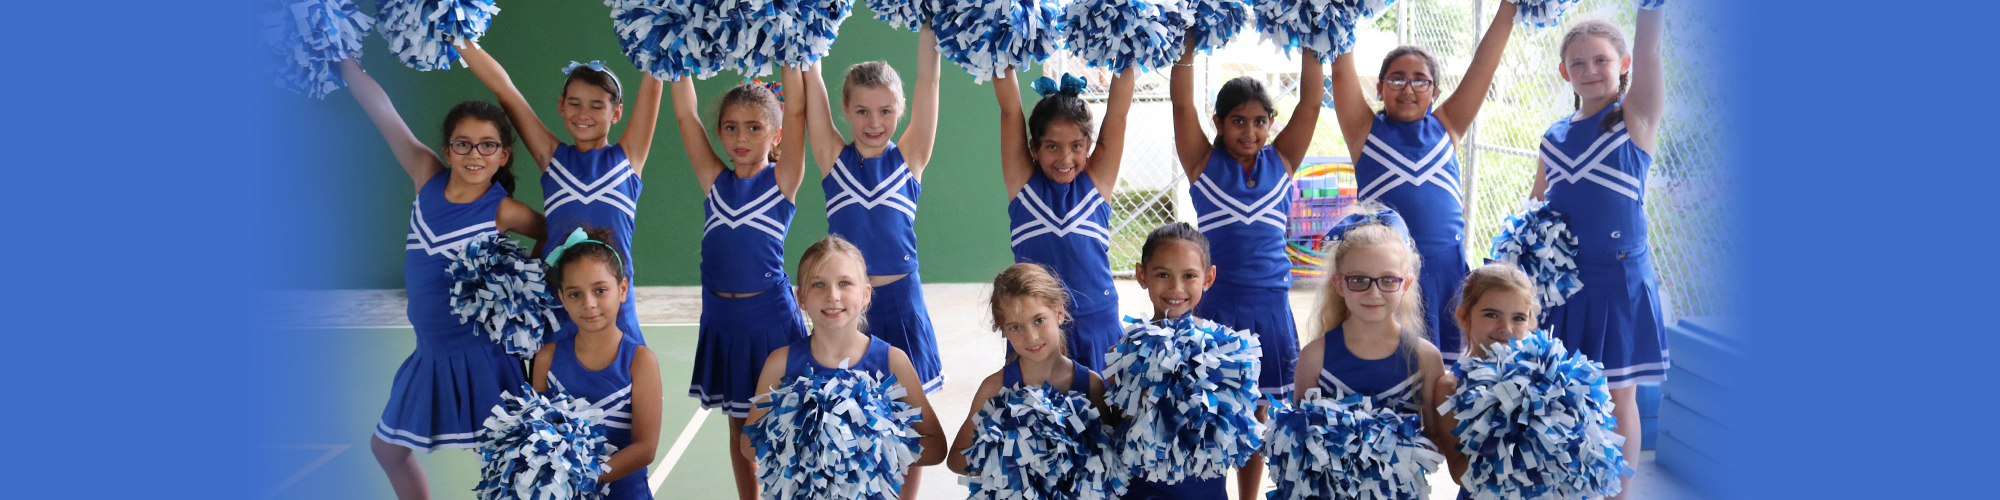 Smiling cheerleaders with pom poms